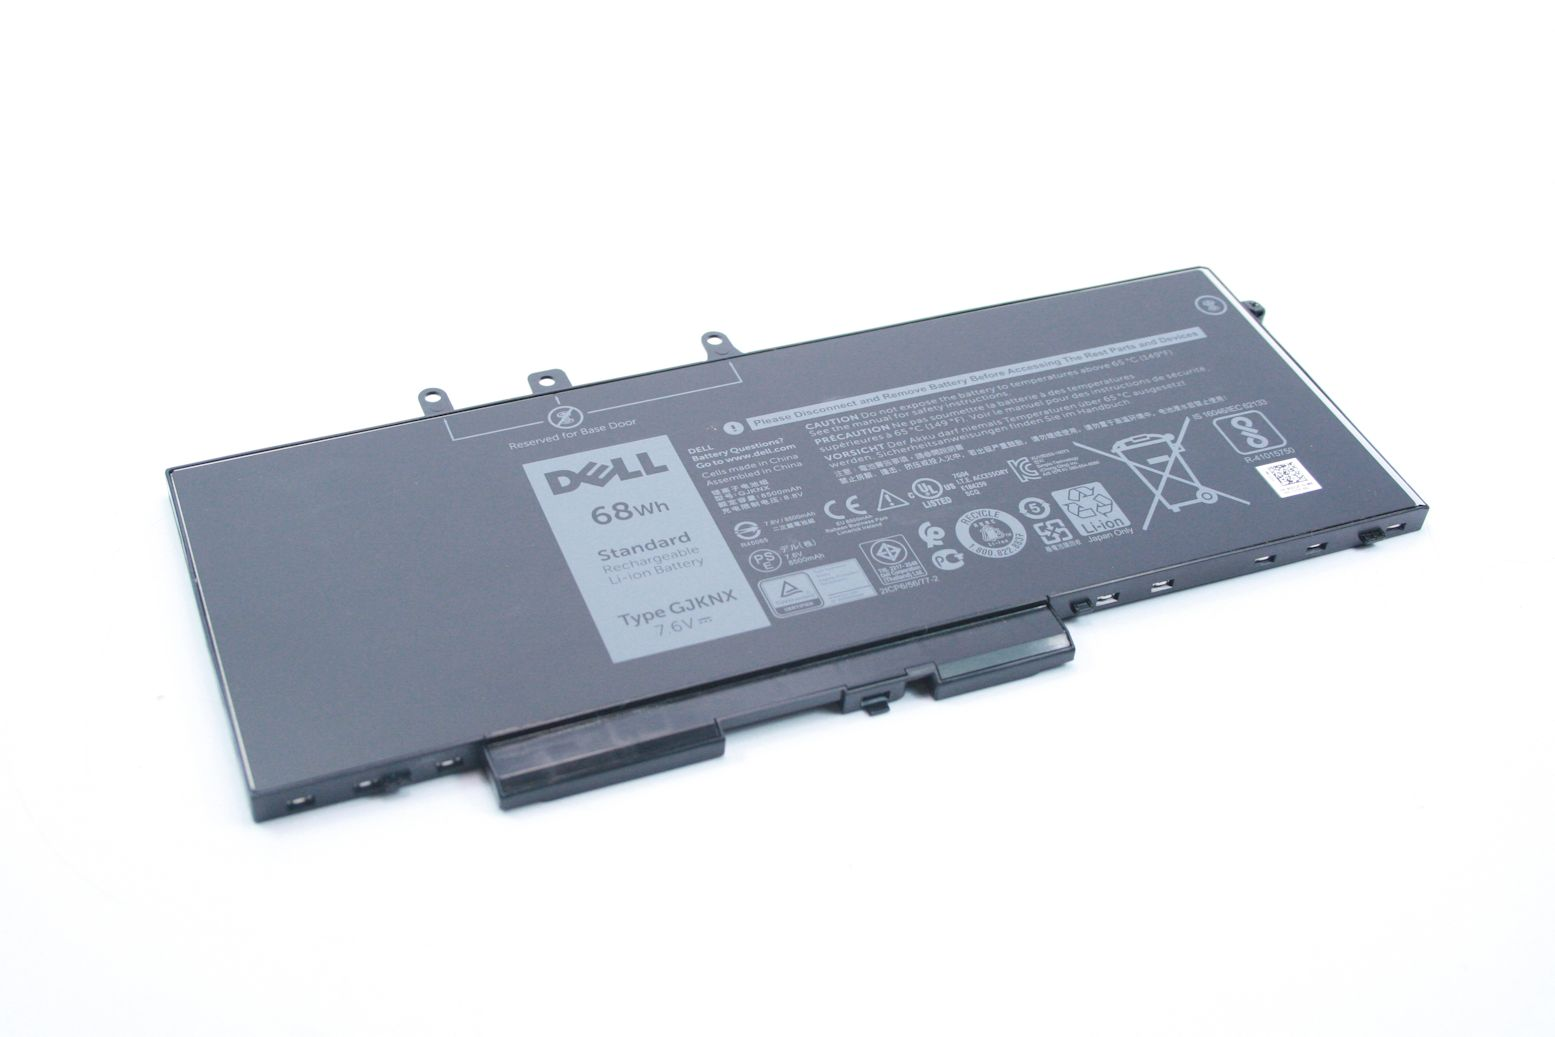 DELL Latitude Precision 5490 5480 68Wh Akku Battery Batterie GJKNX